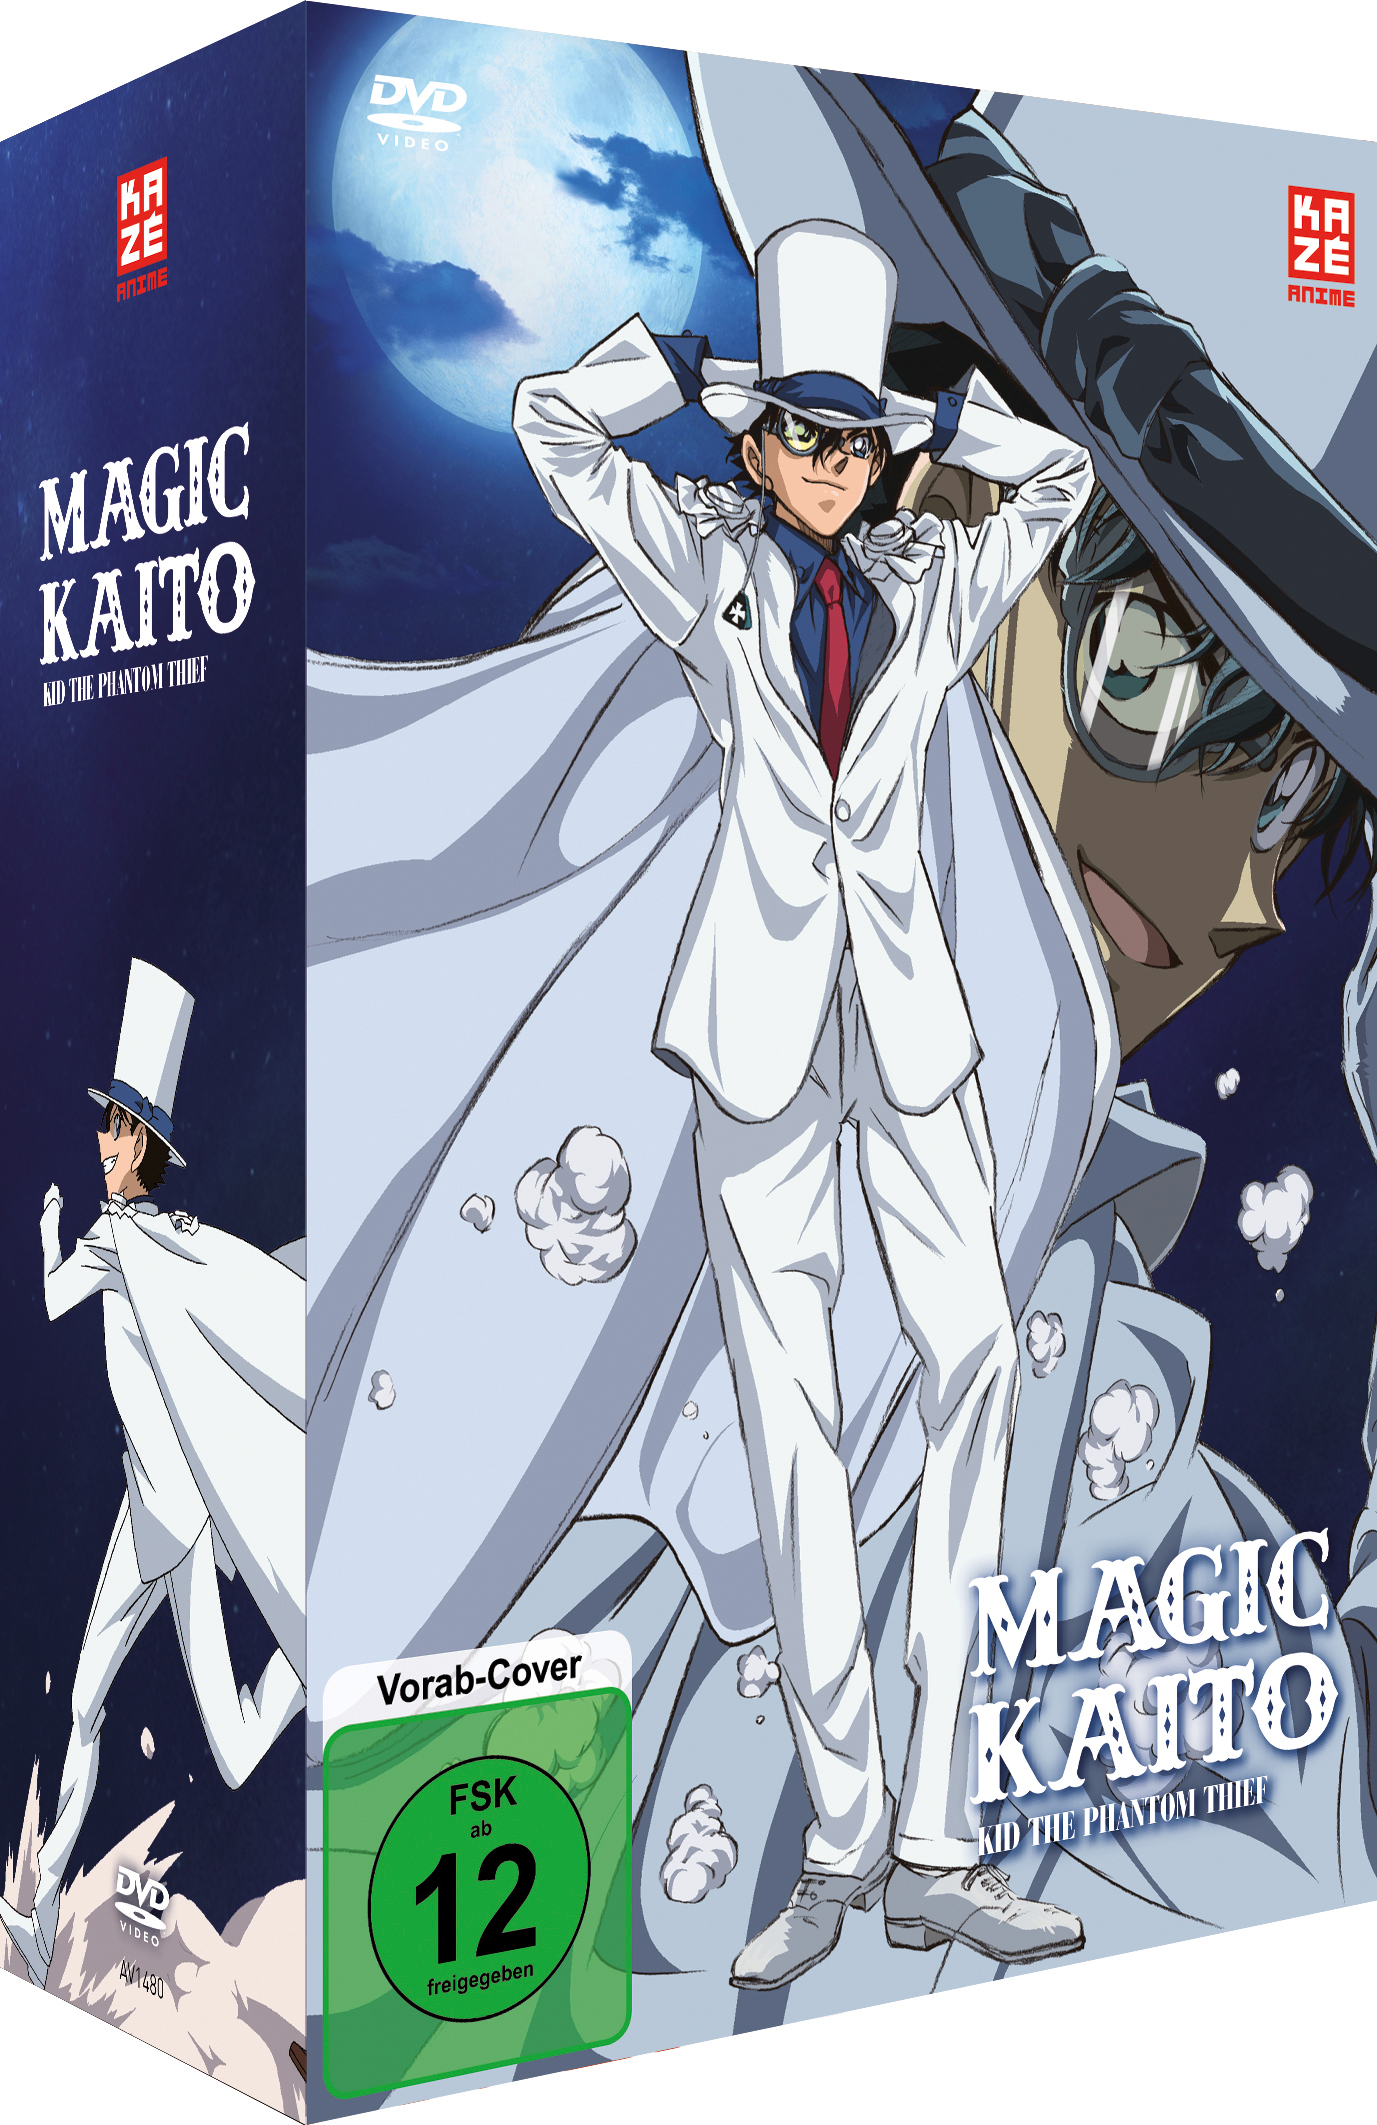 Magic Kaito Kid the Phantom Thief Vol 1 Sammelschuber DVD Vorabcover